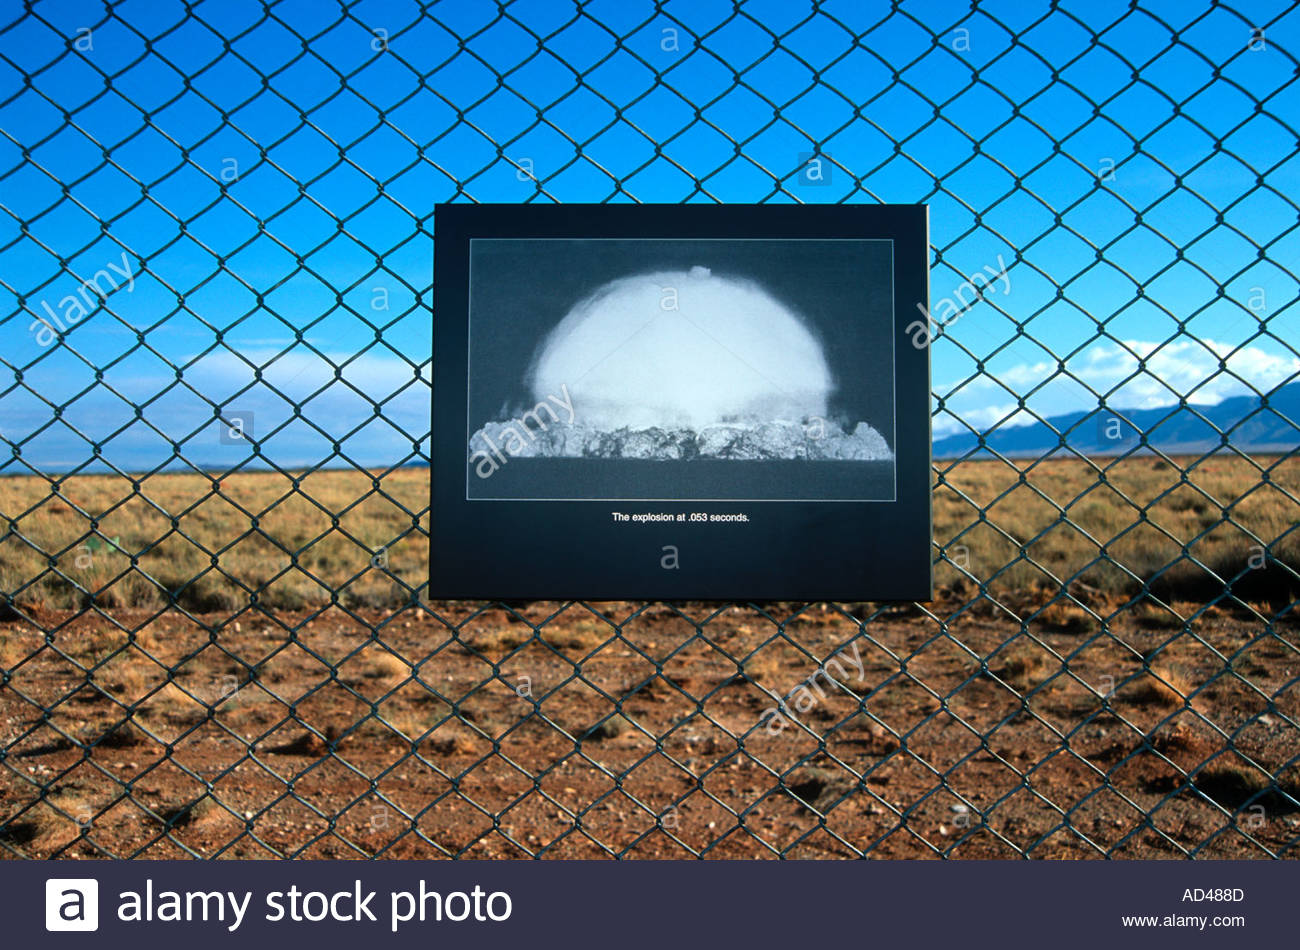 Ground Zero at the trinity site showing an image of the worlds first Nuclear explosion - Stock Image